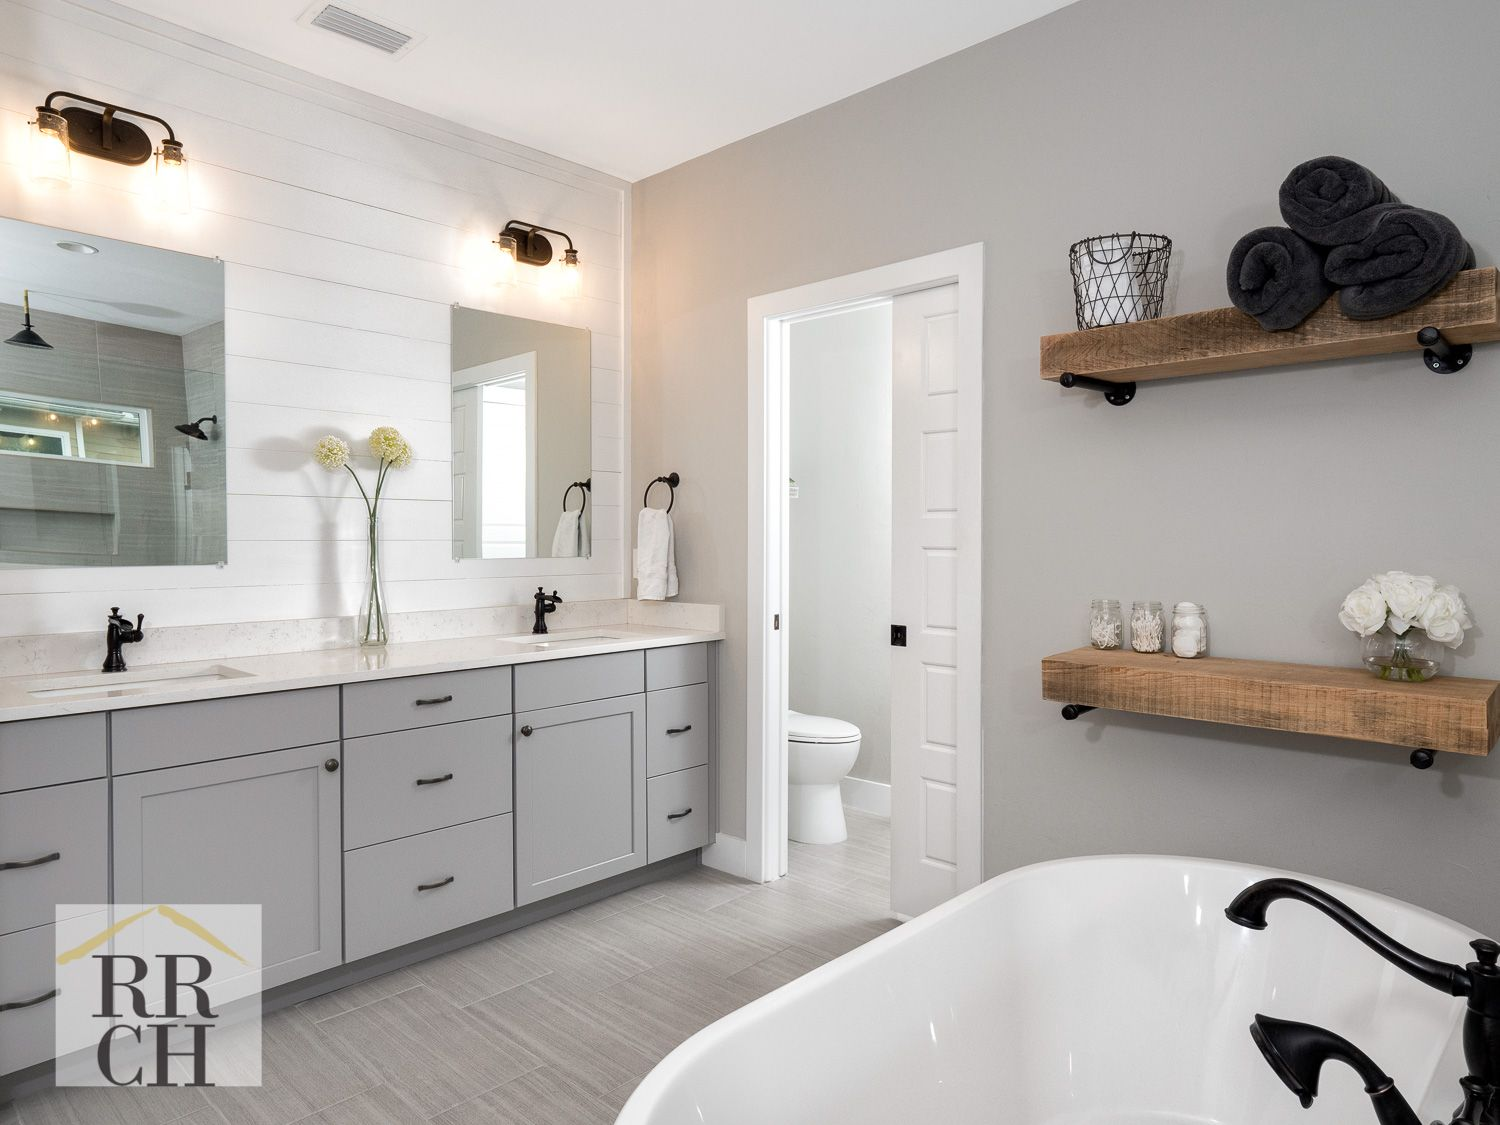 Gray Waypoint Cabinetry Quartz Countertops Oil Rubbed Bronze Fixtures Shiplap Wall Grey And White M Bronze Bathroom Fixtures Bronze Bathroom Tiny Bathrooms